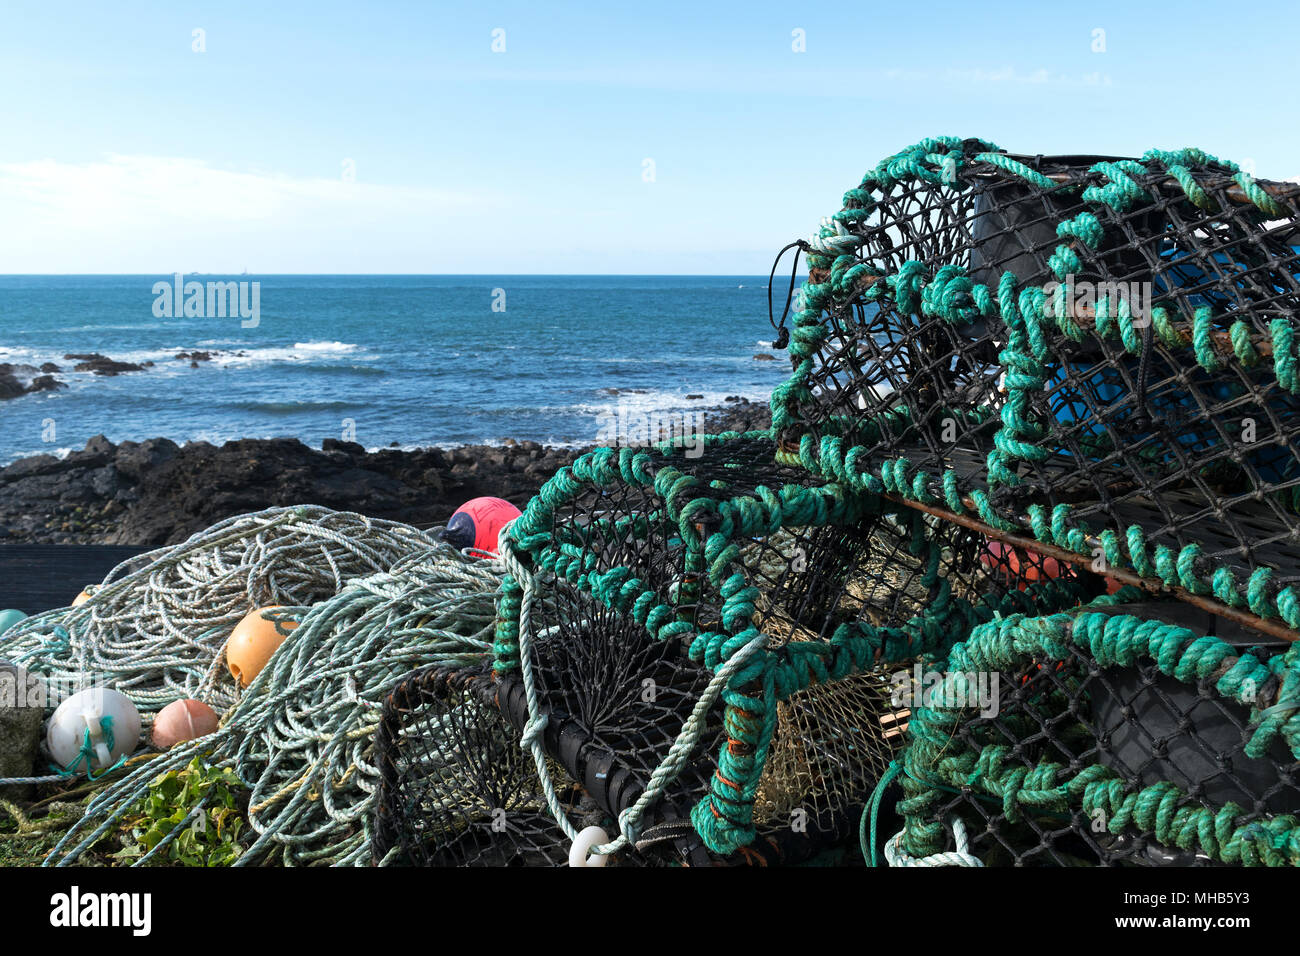 crab lobster pots at priests cove, cape cornwall, cornwall, england, britain, uk. - Stock Image